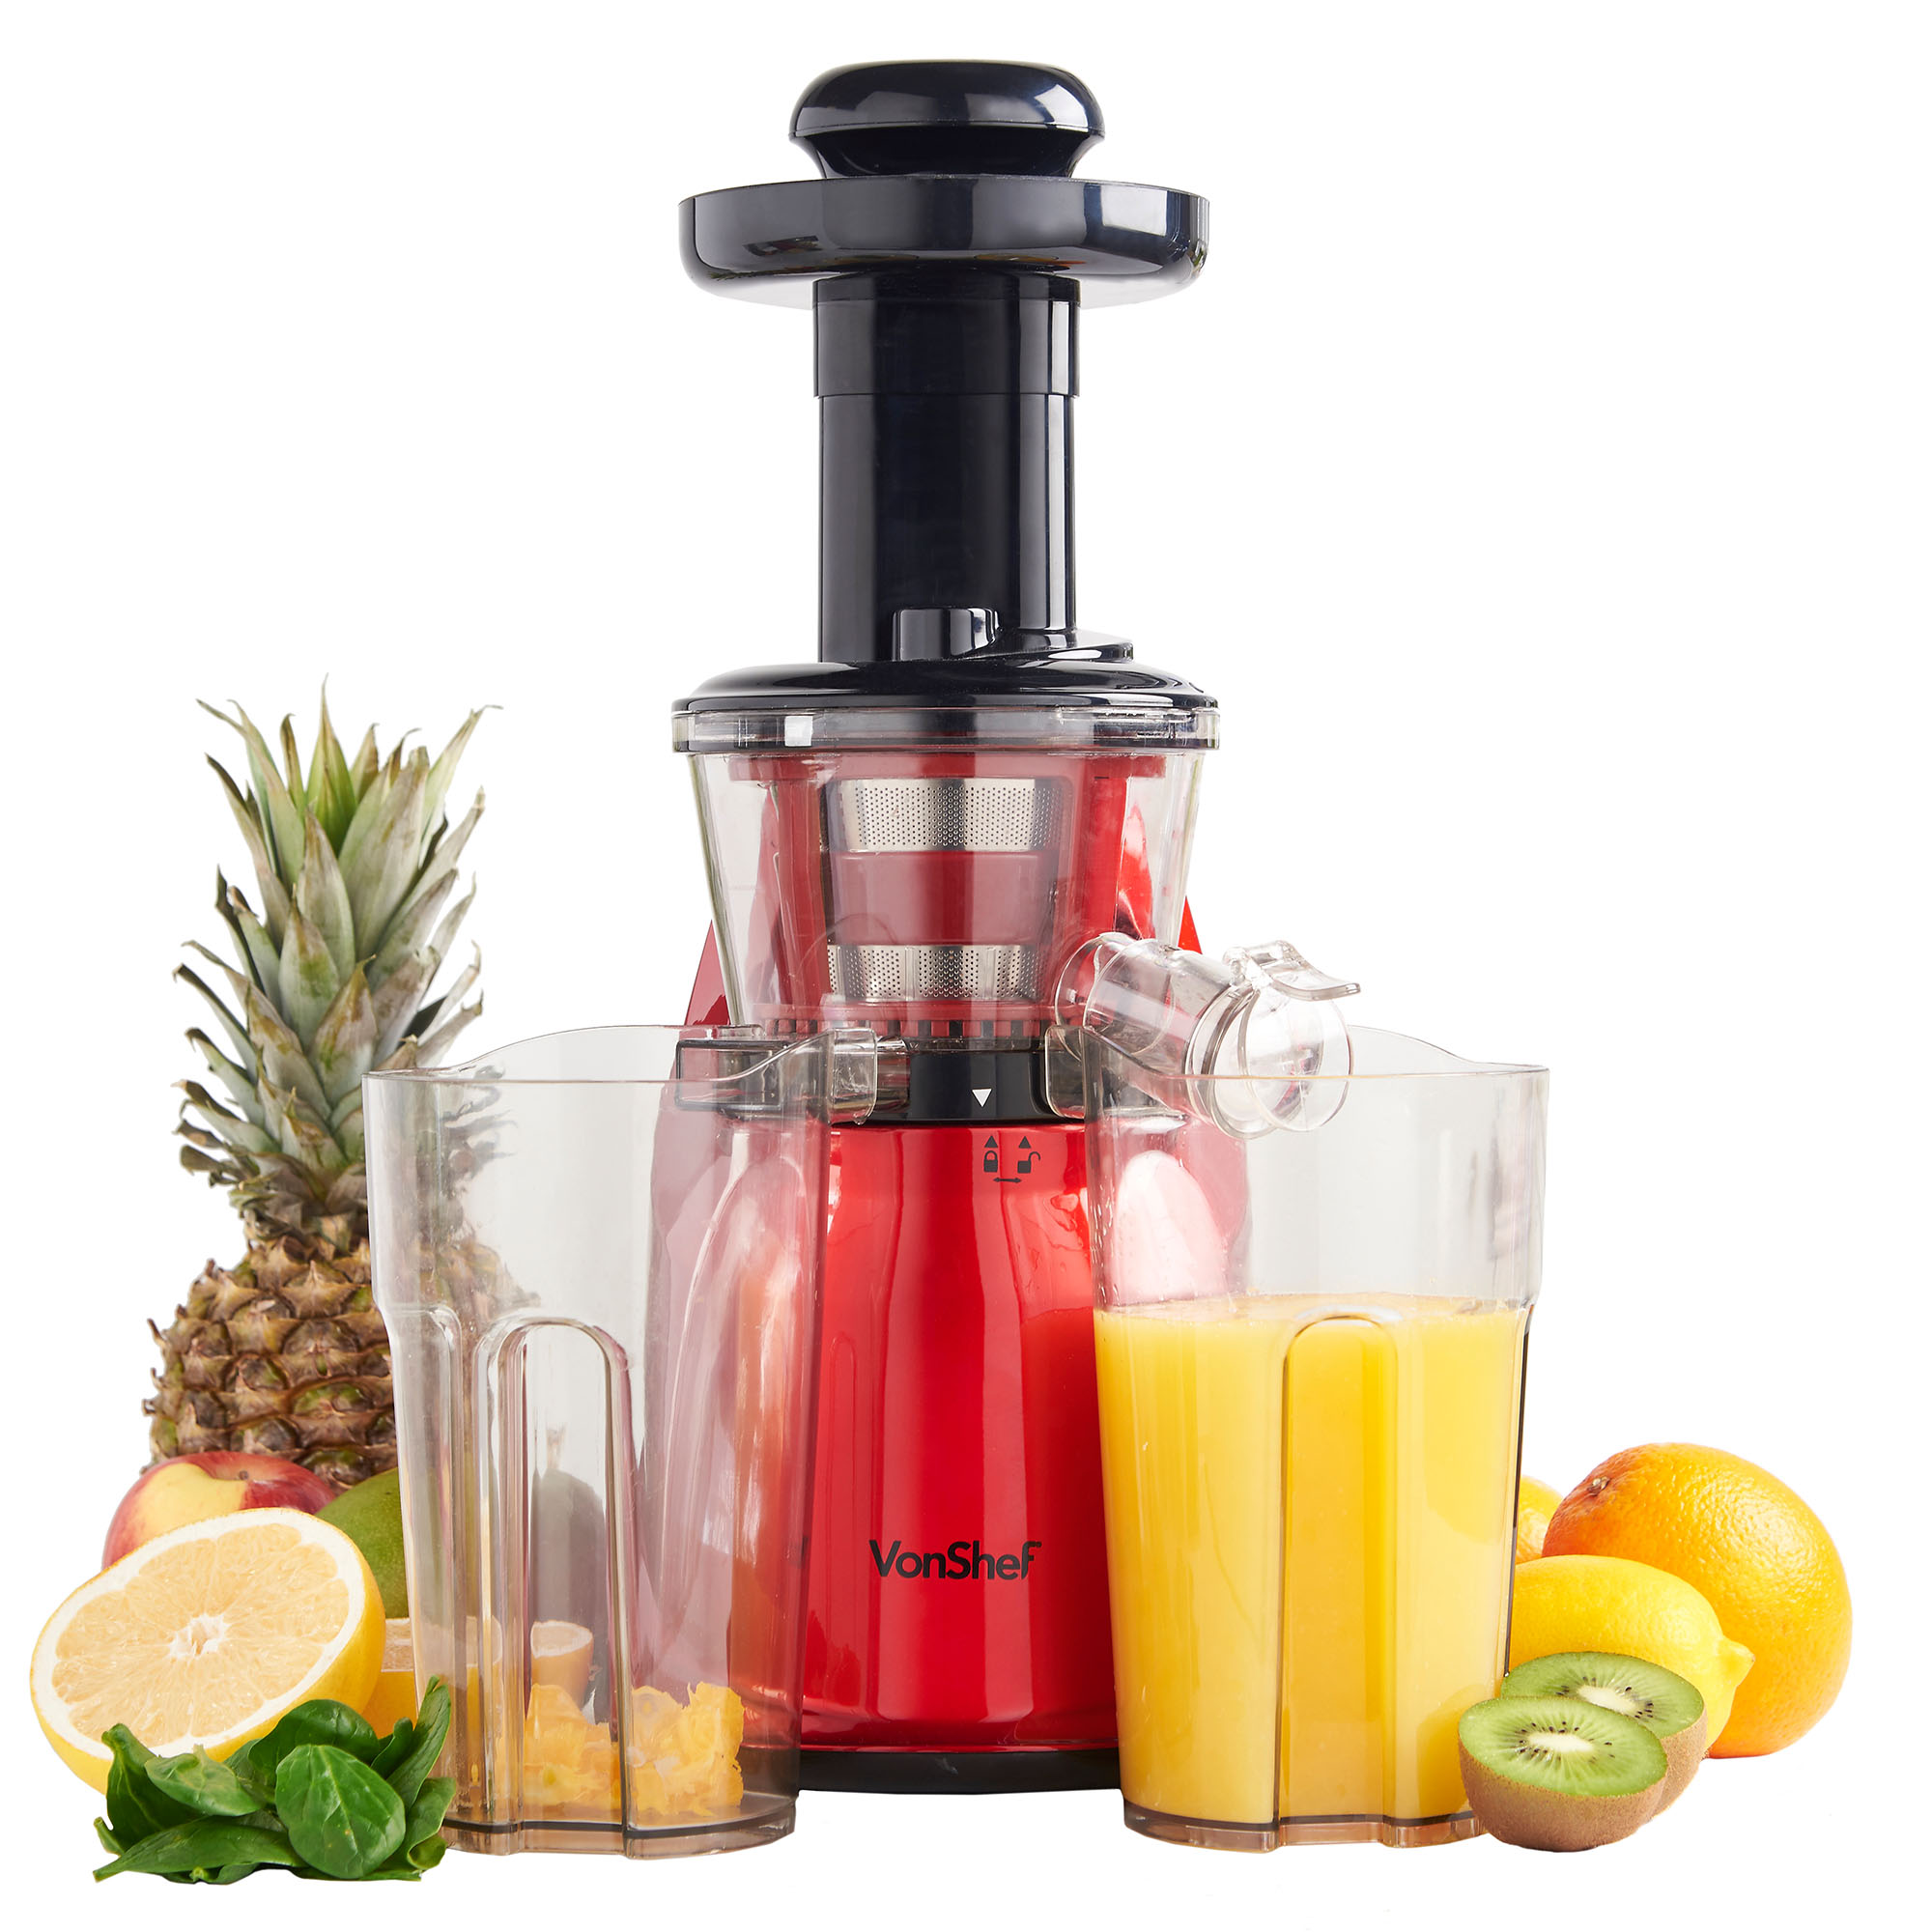 Kale In Slow Juicer : vonShef Premium Slow Masticating Juicer Electric vegetable Juice Extractor - Red eBay